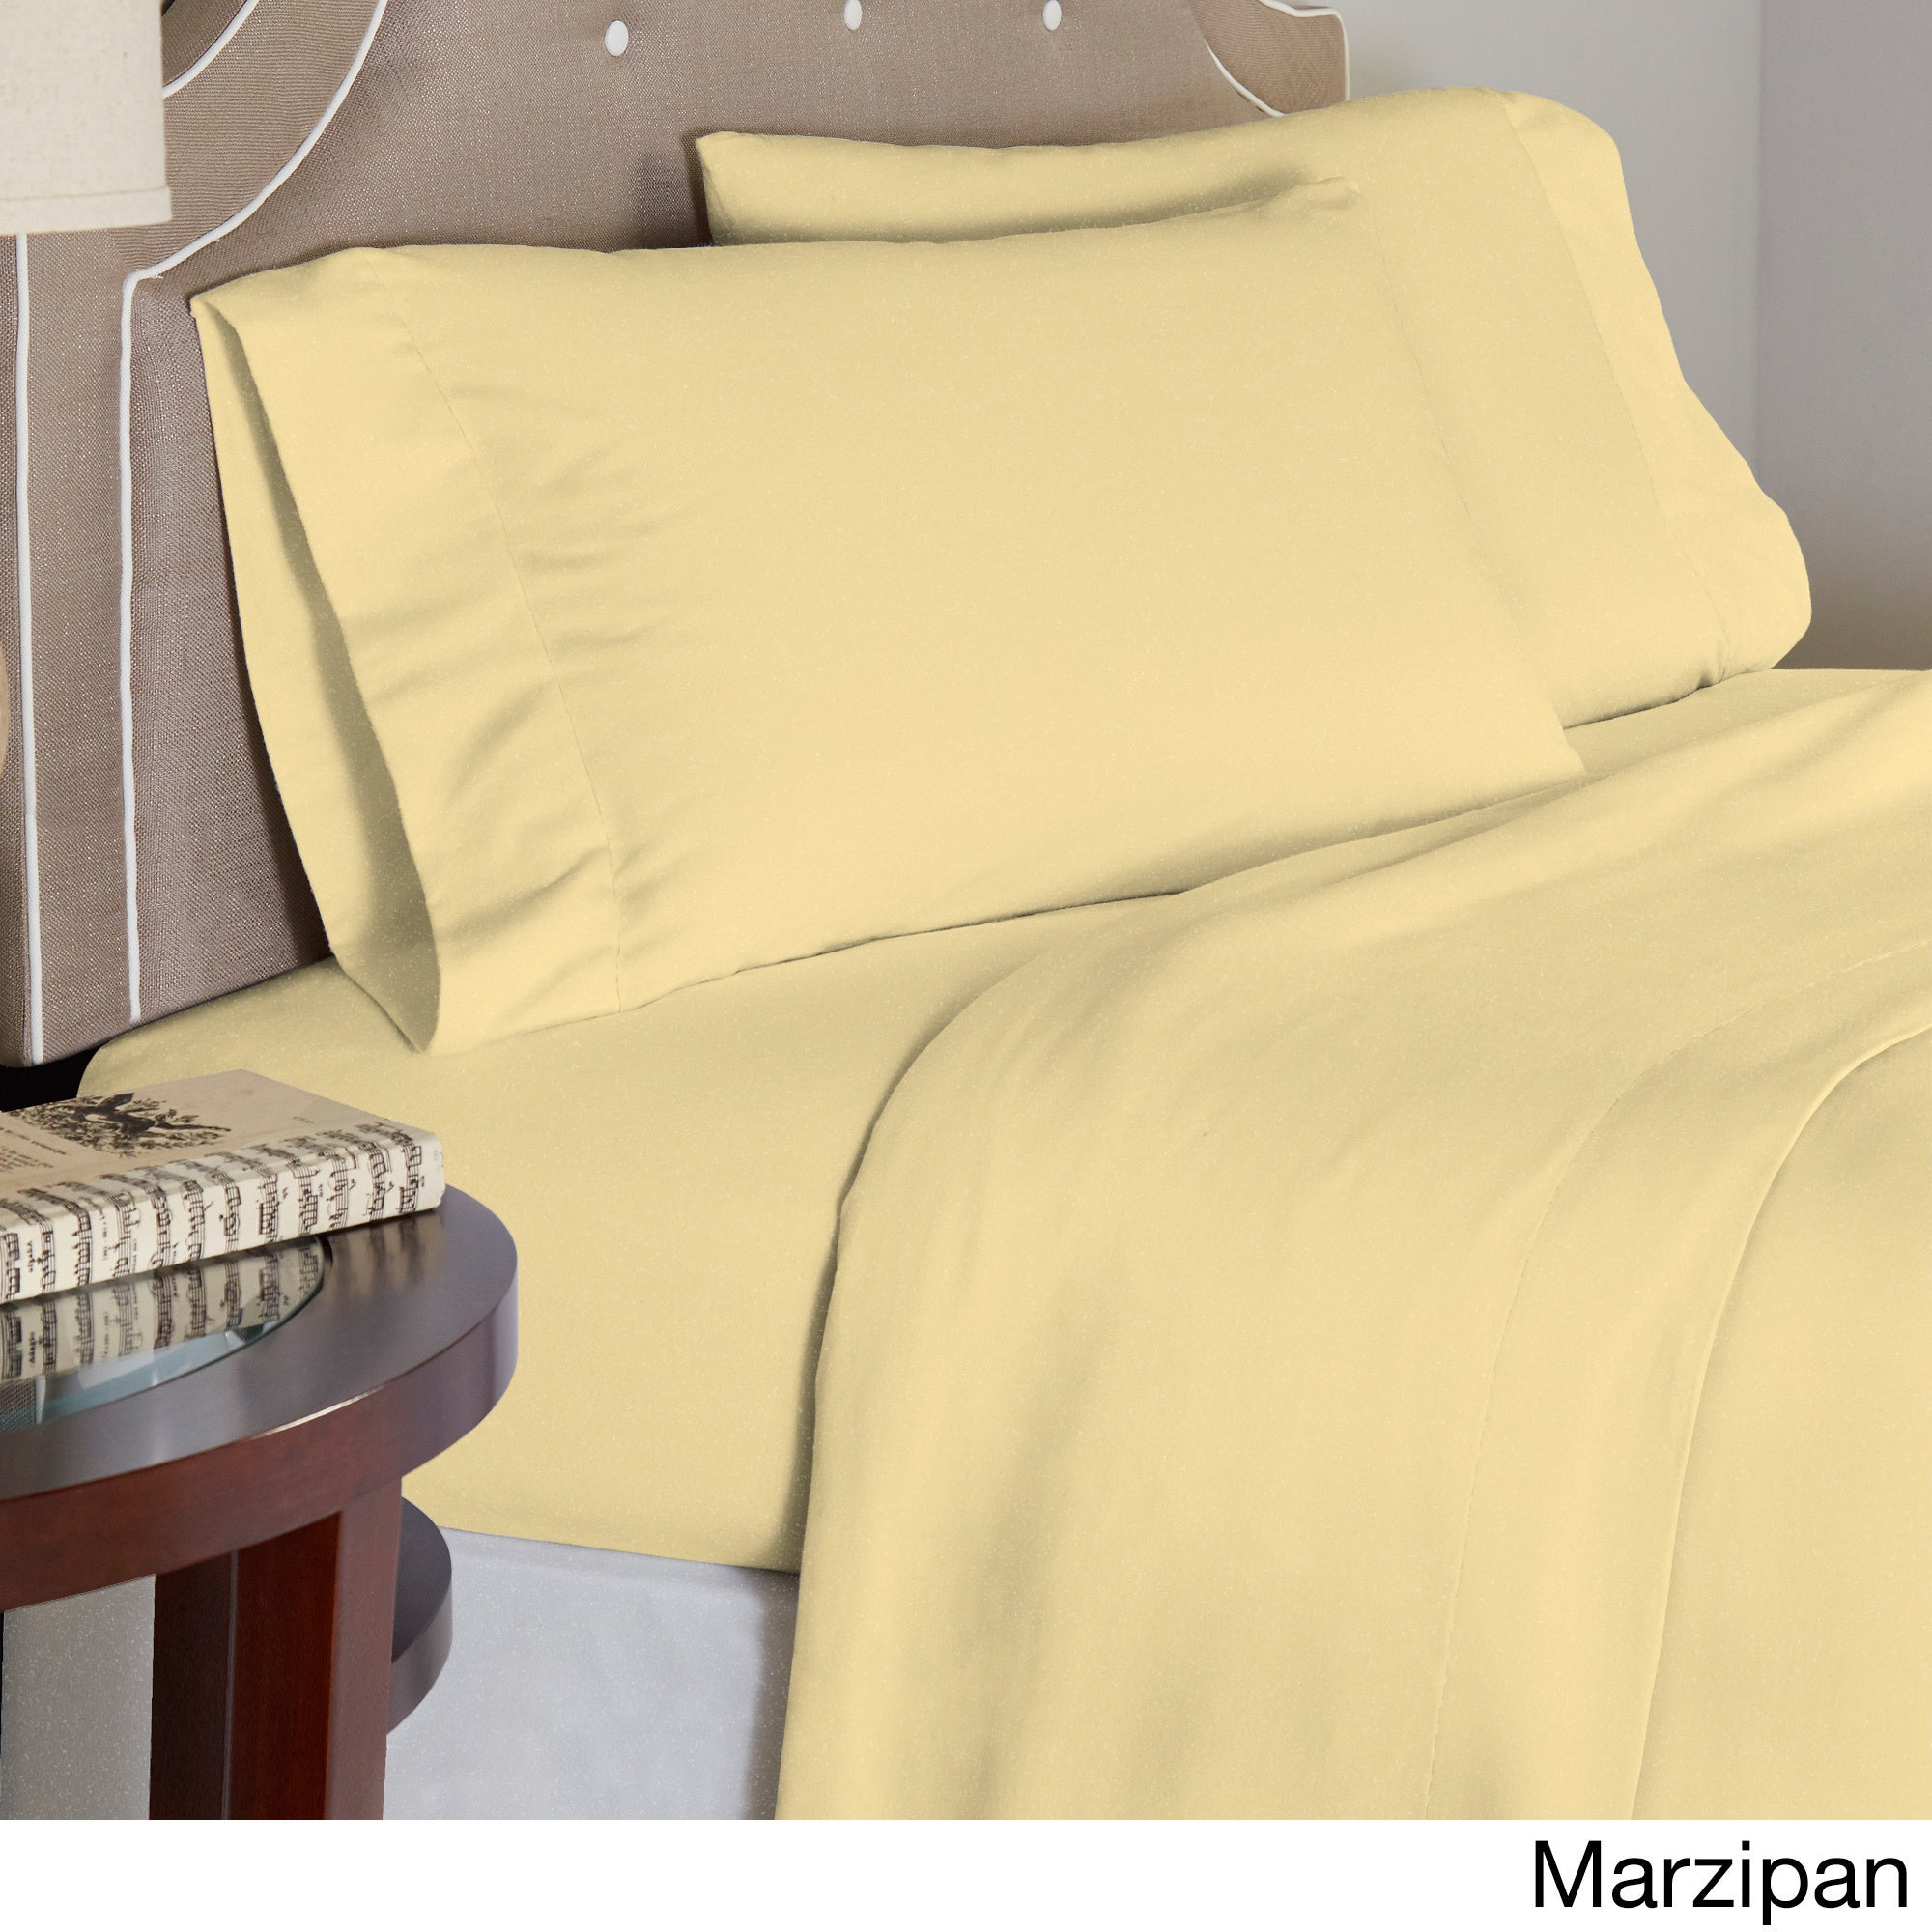 Twin Size Yellow Duvet Covers For Less | Overstock.com